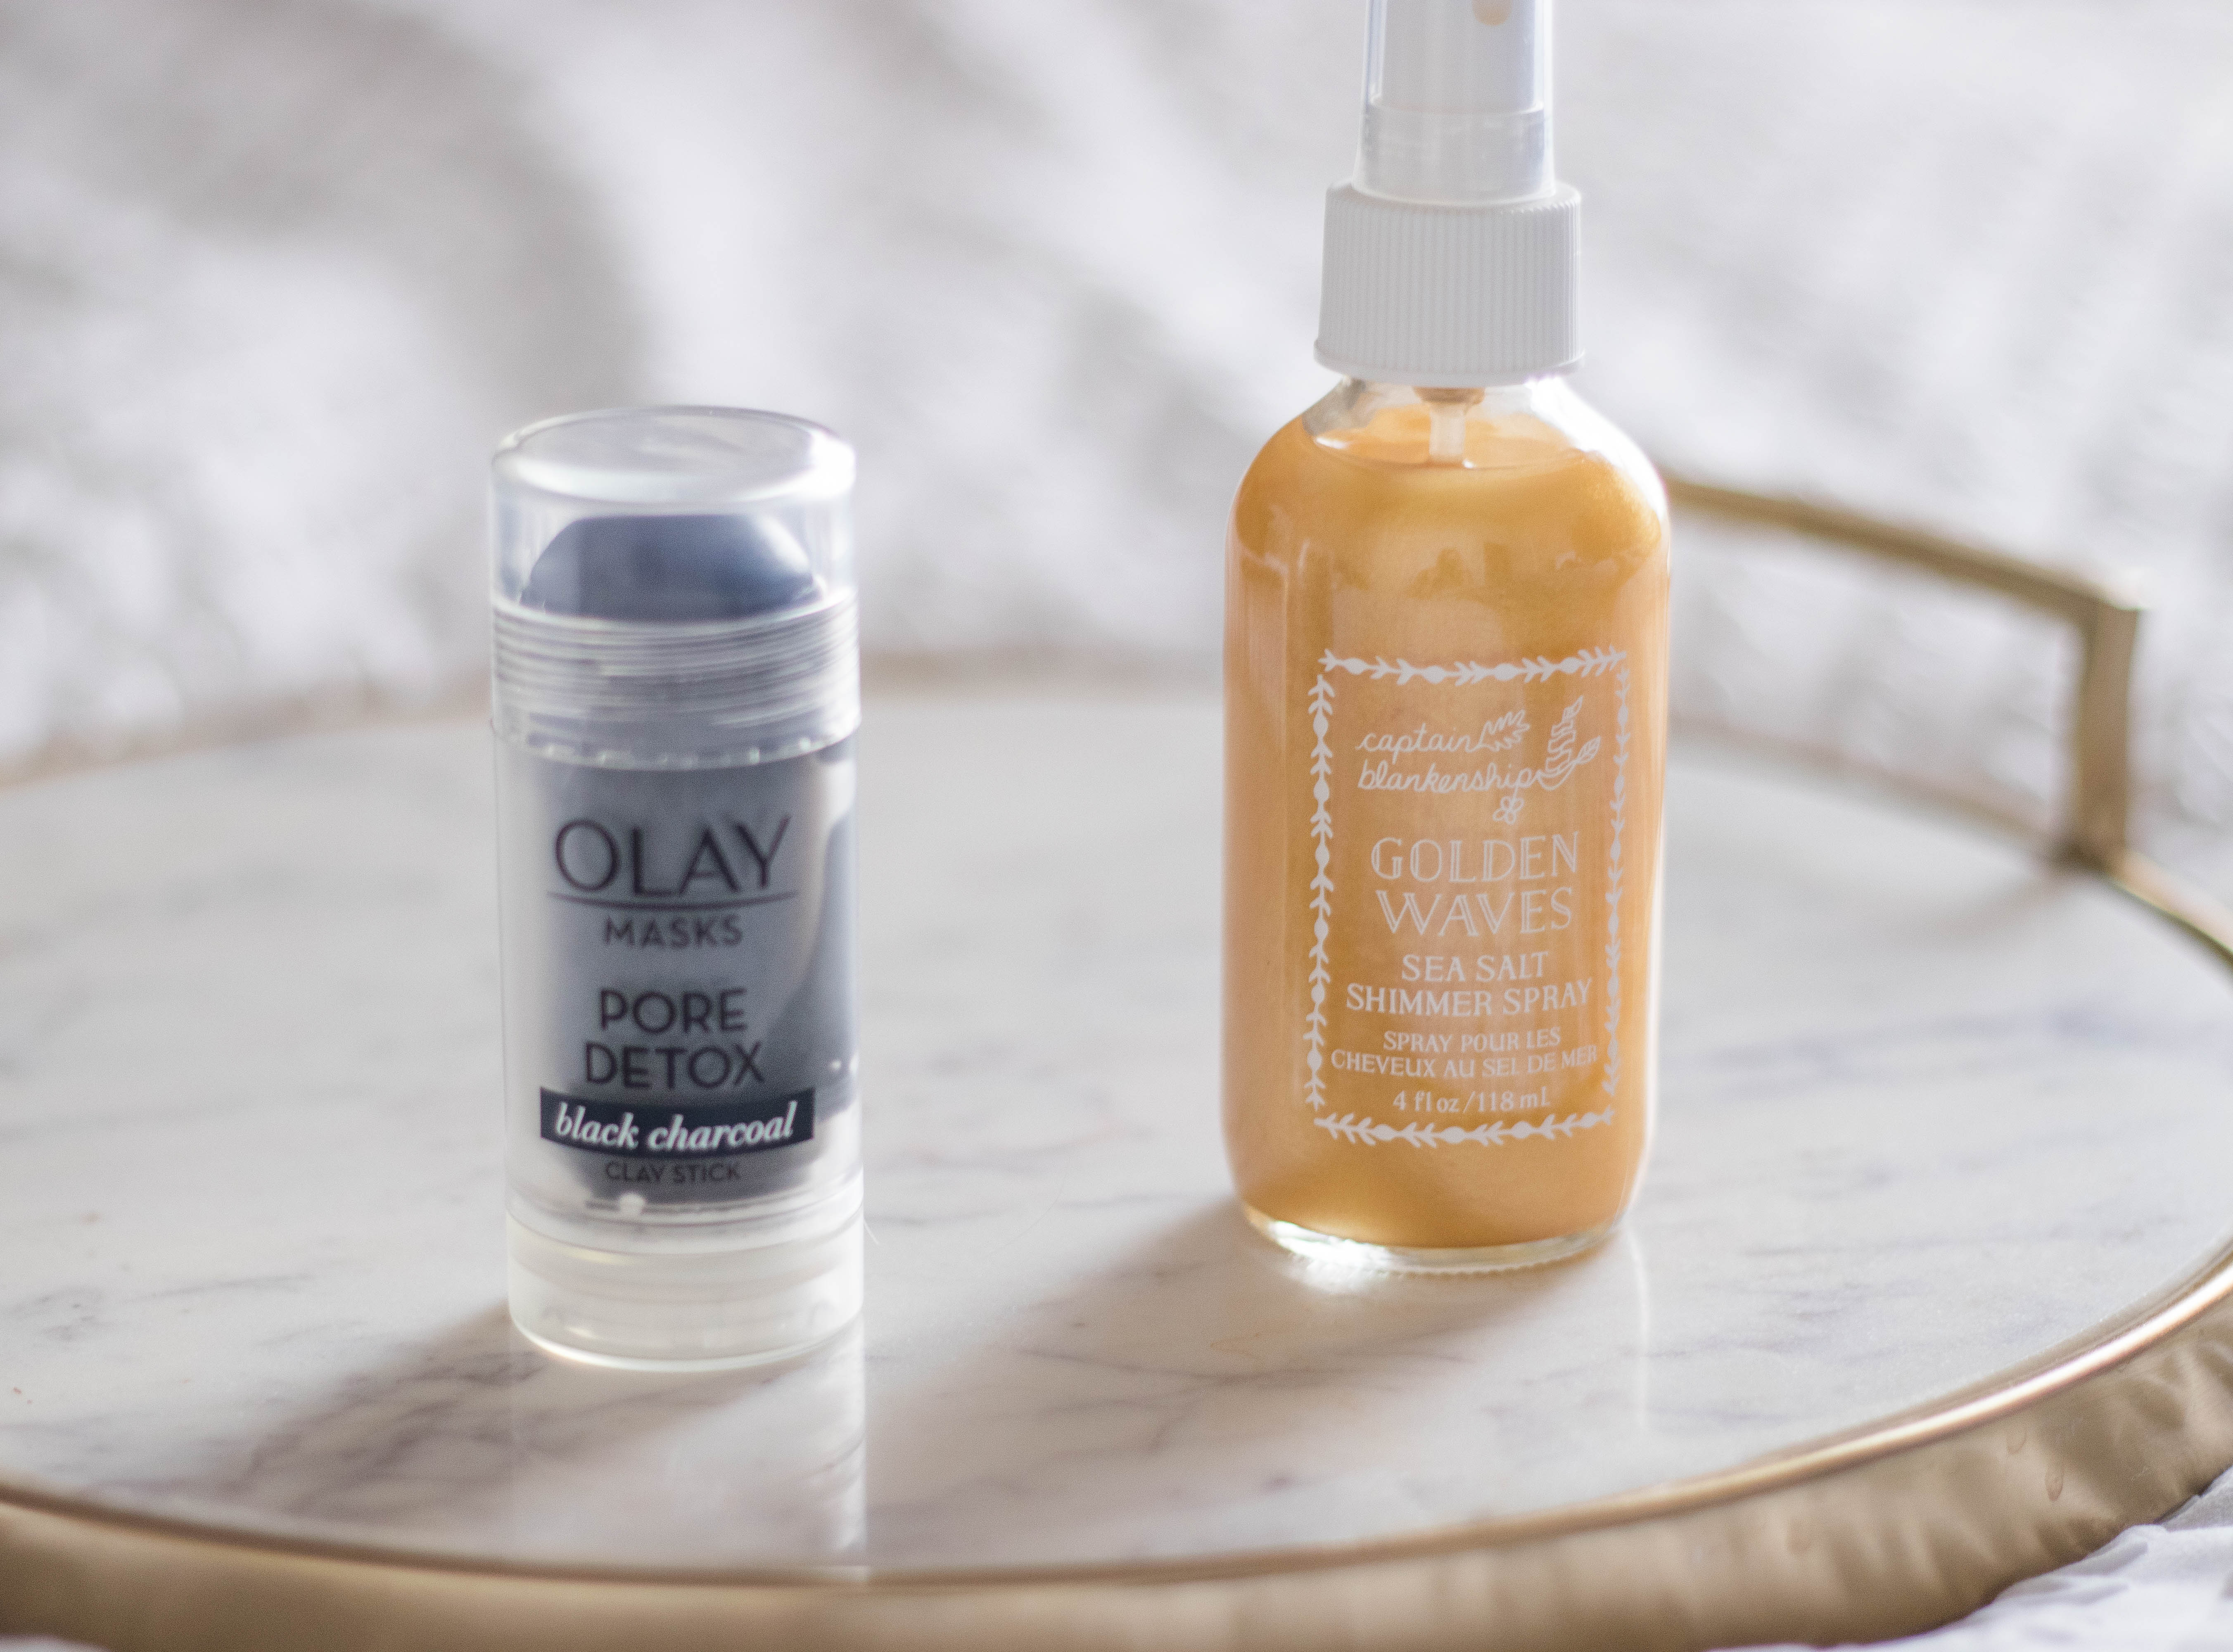 olay stick mask review #olay #claymask #skincare